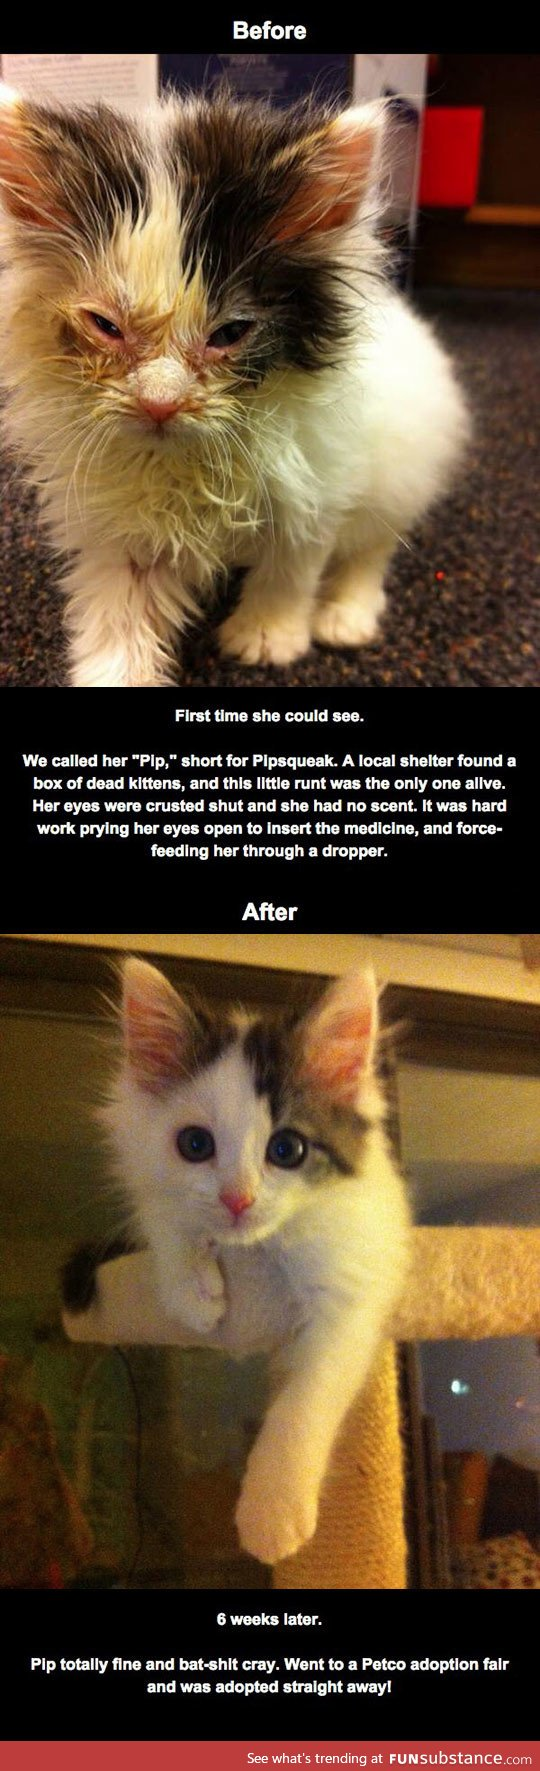 Rescued Kitty Initially Blind From Eye Infection Recovers Sight Funsubstance Rescue Dogs Puppies And Kitties Best Dogs